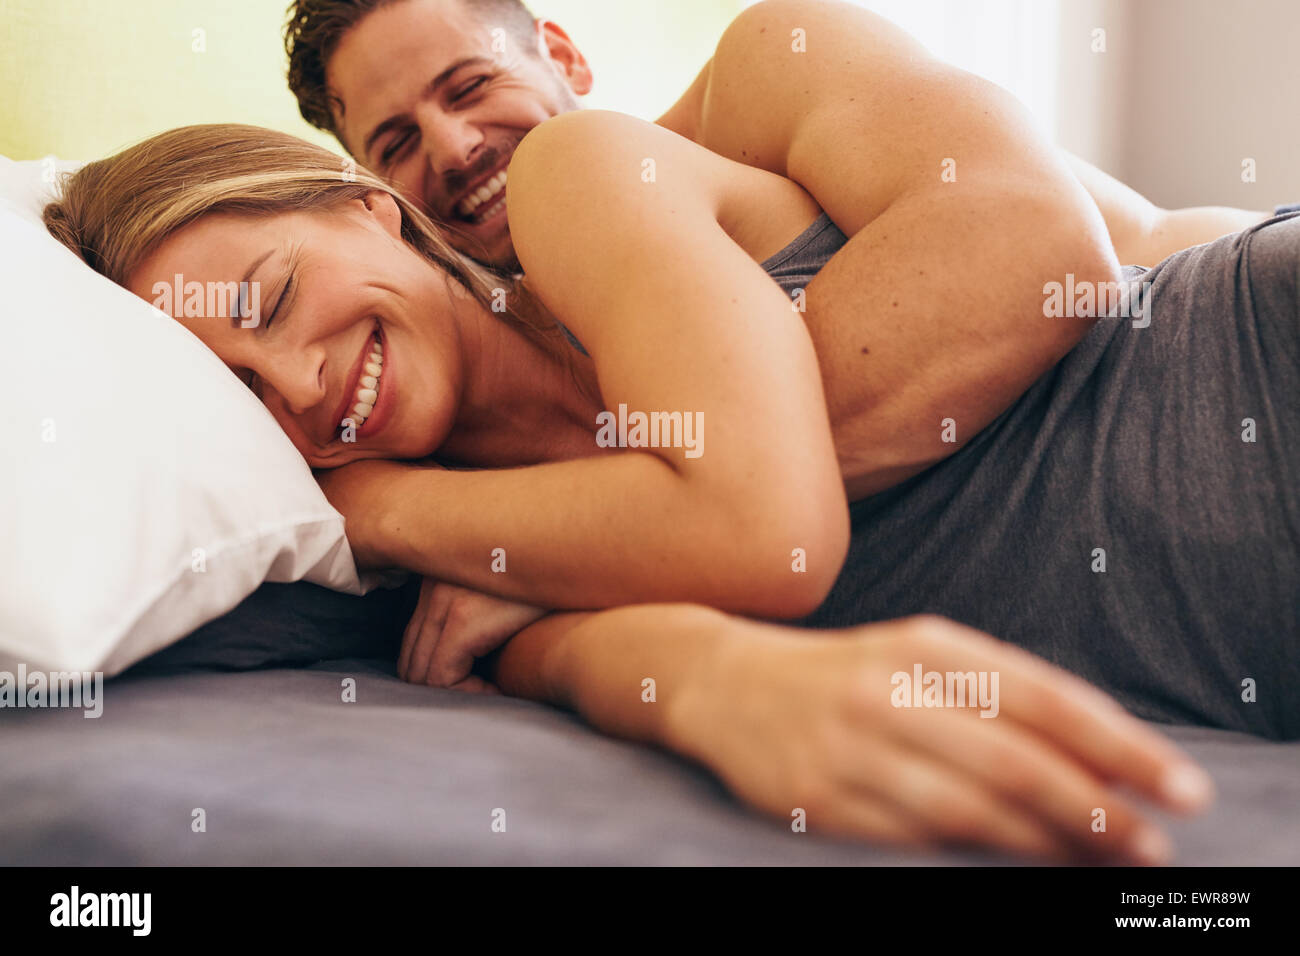 Image de cute young couple in love lying on bed. L'homme réveille sa femme en matinée. Photo Stock